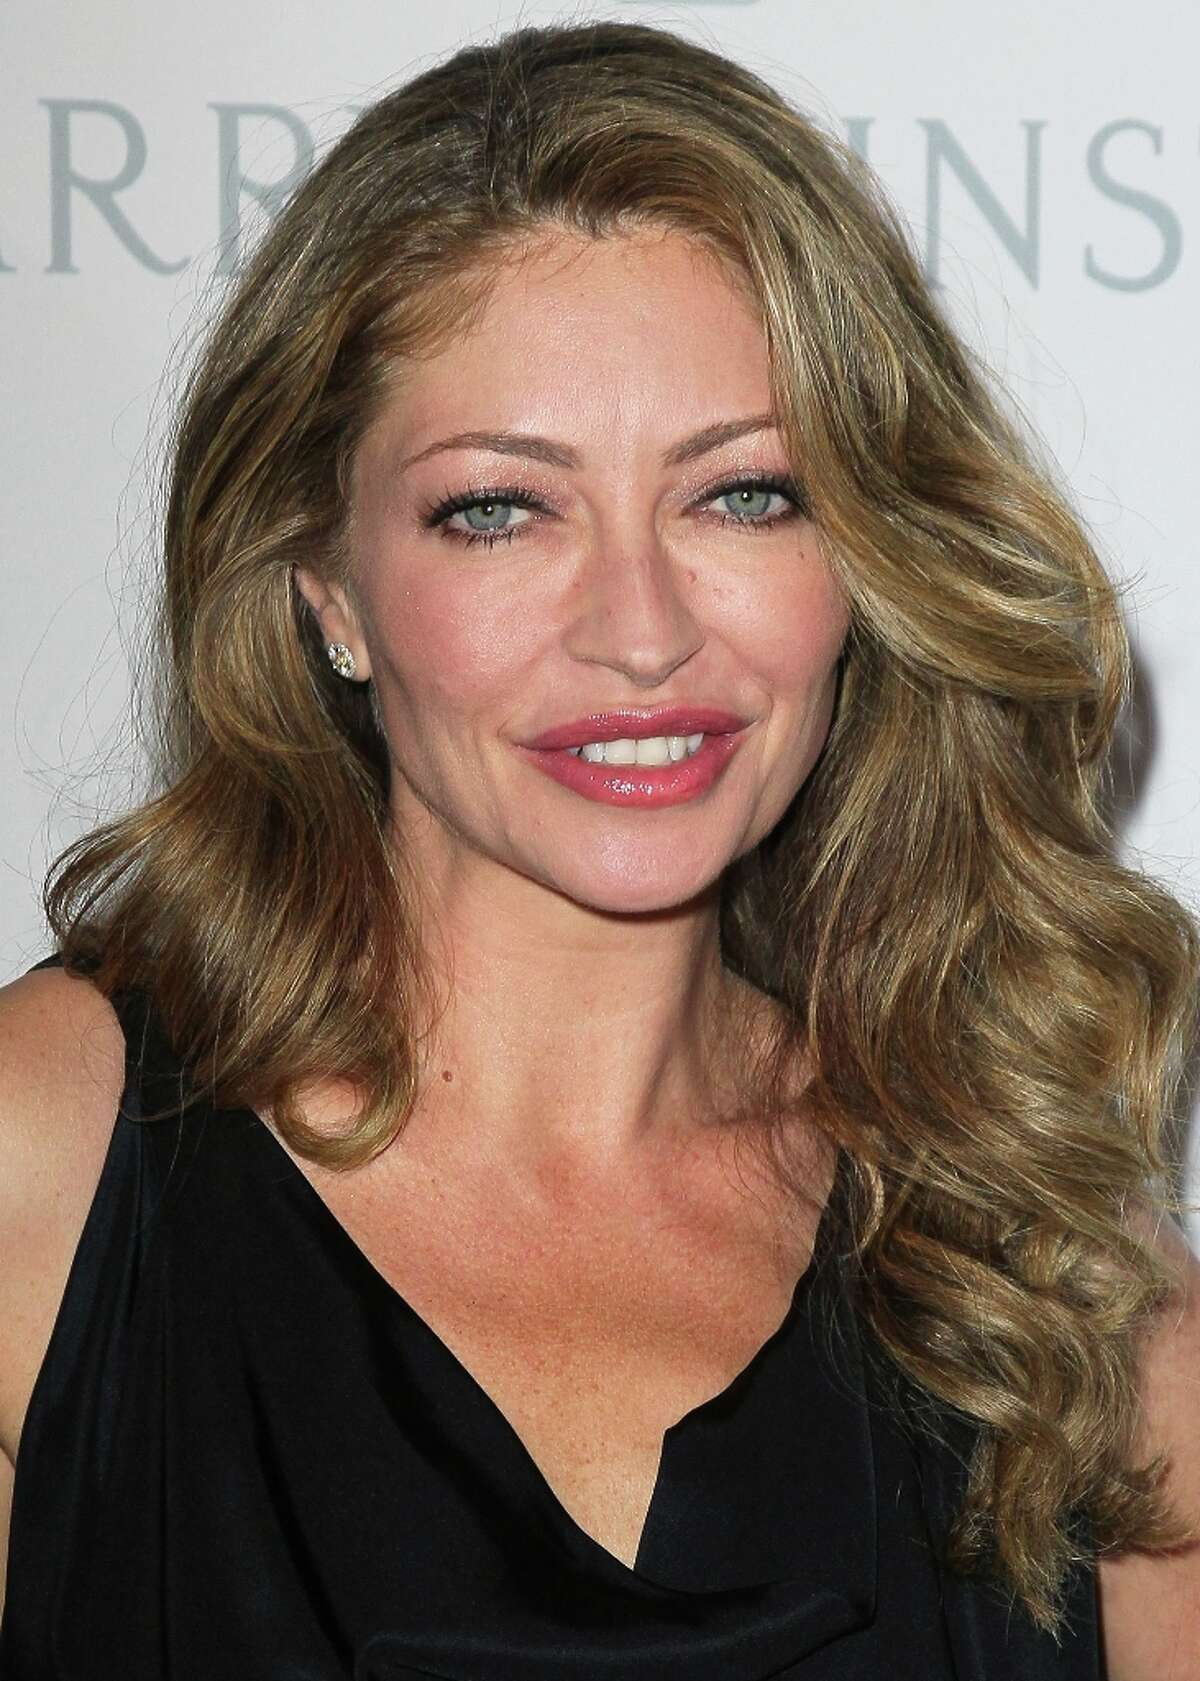 Rebecca Gayheart The 'Jawbreaker' actress and former face of Noxzema was convicted of vehicular manslaughter after she hit and killed a 9-year old boy in 2001.